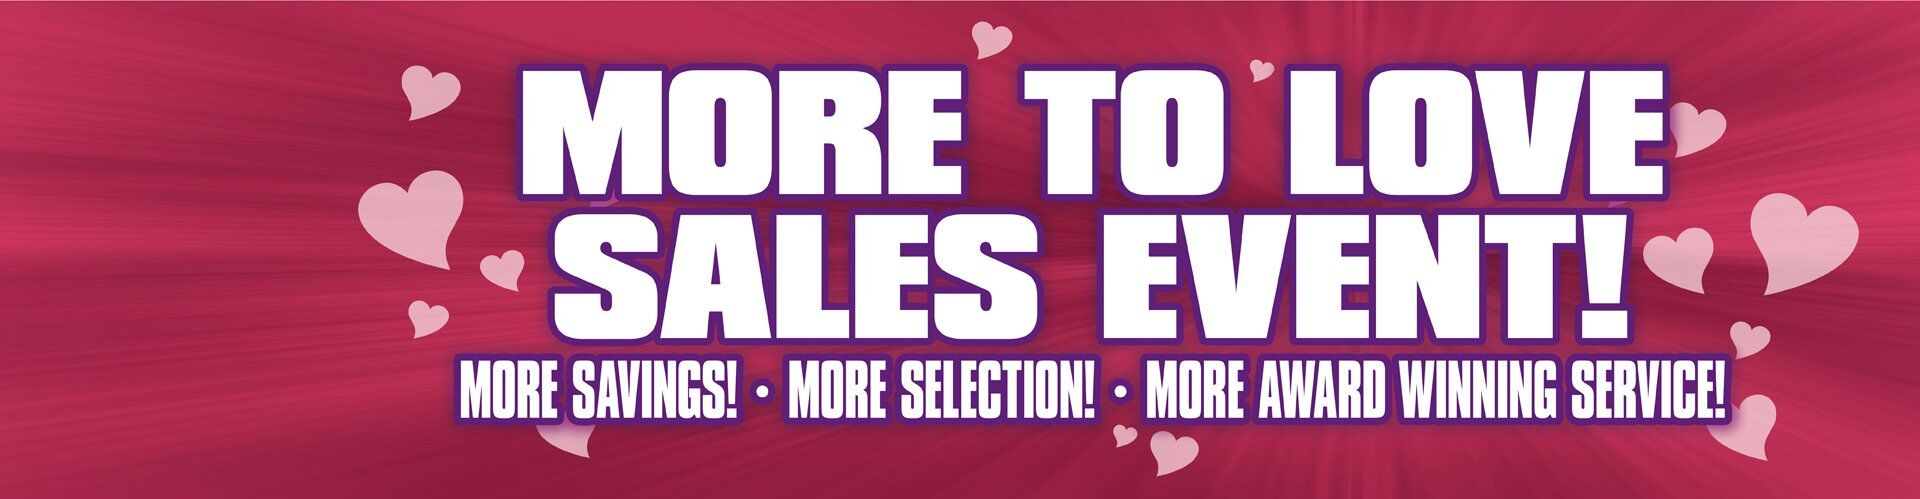 More To Love Sales Event!